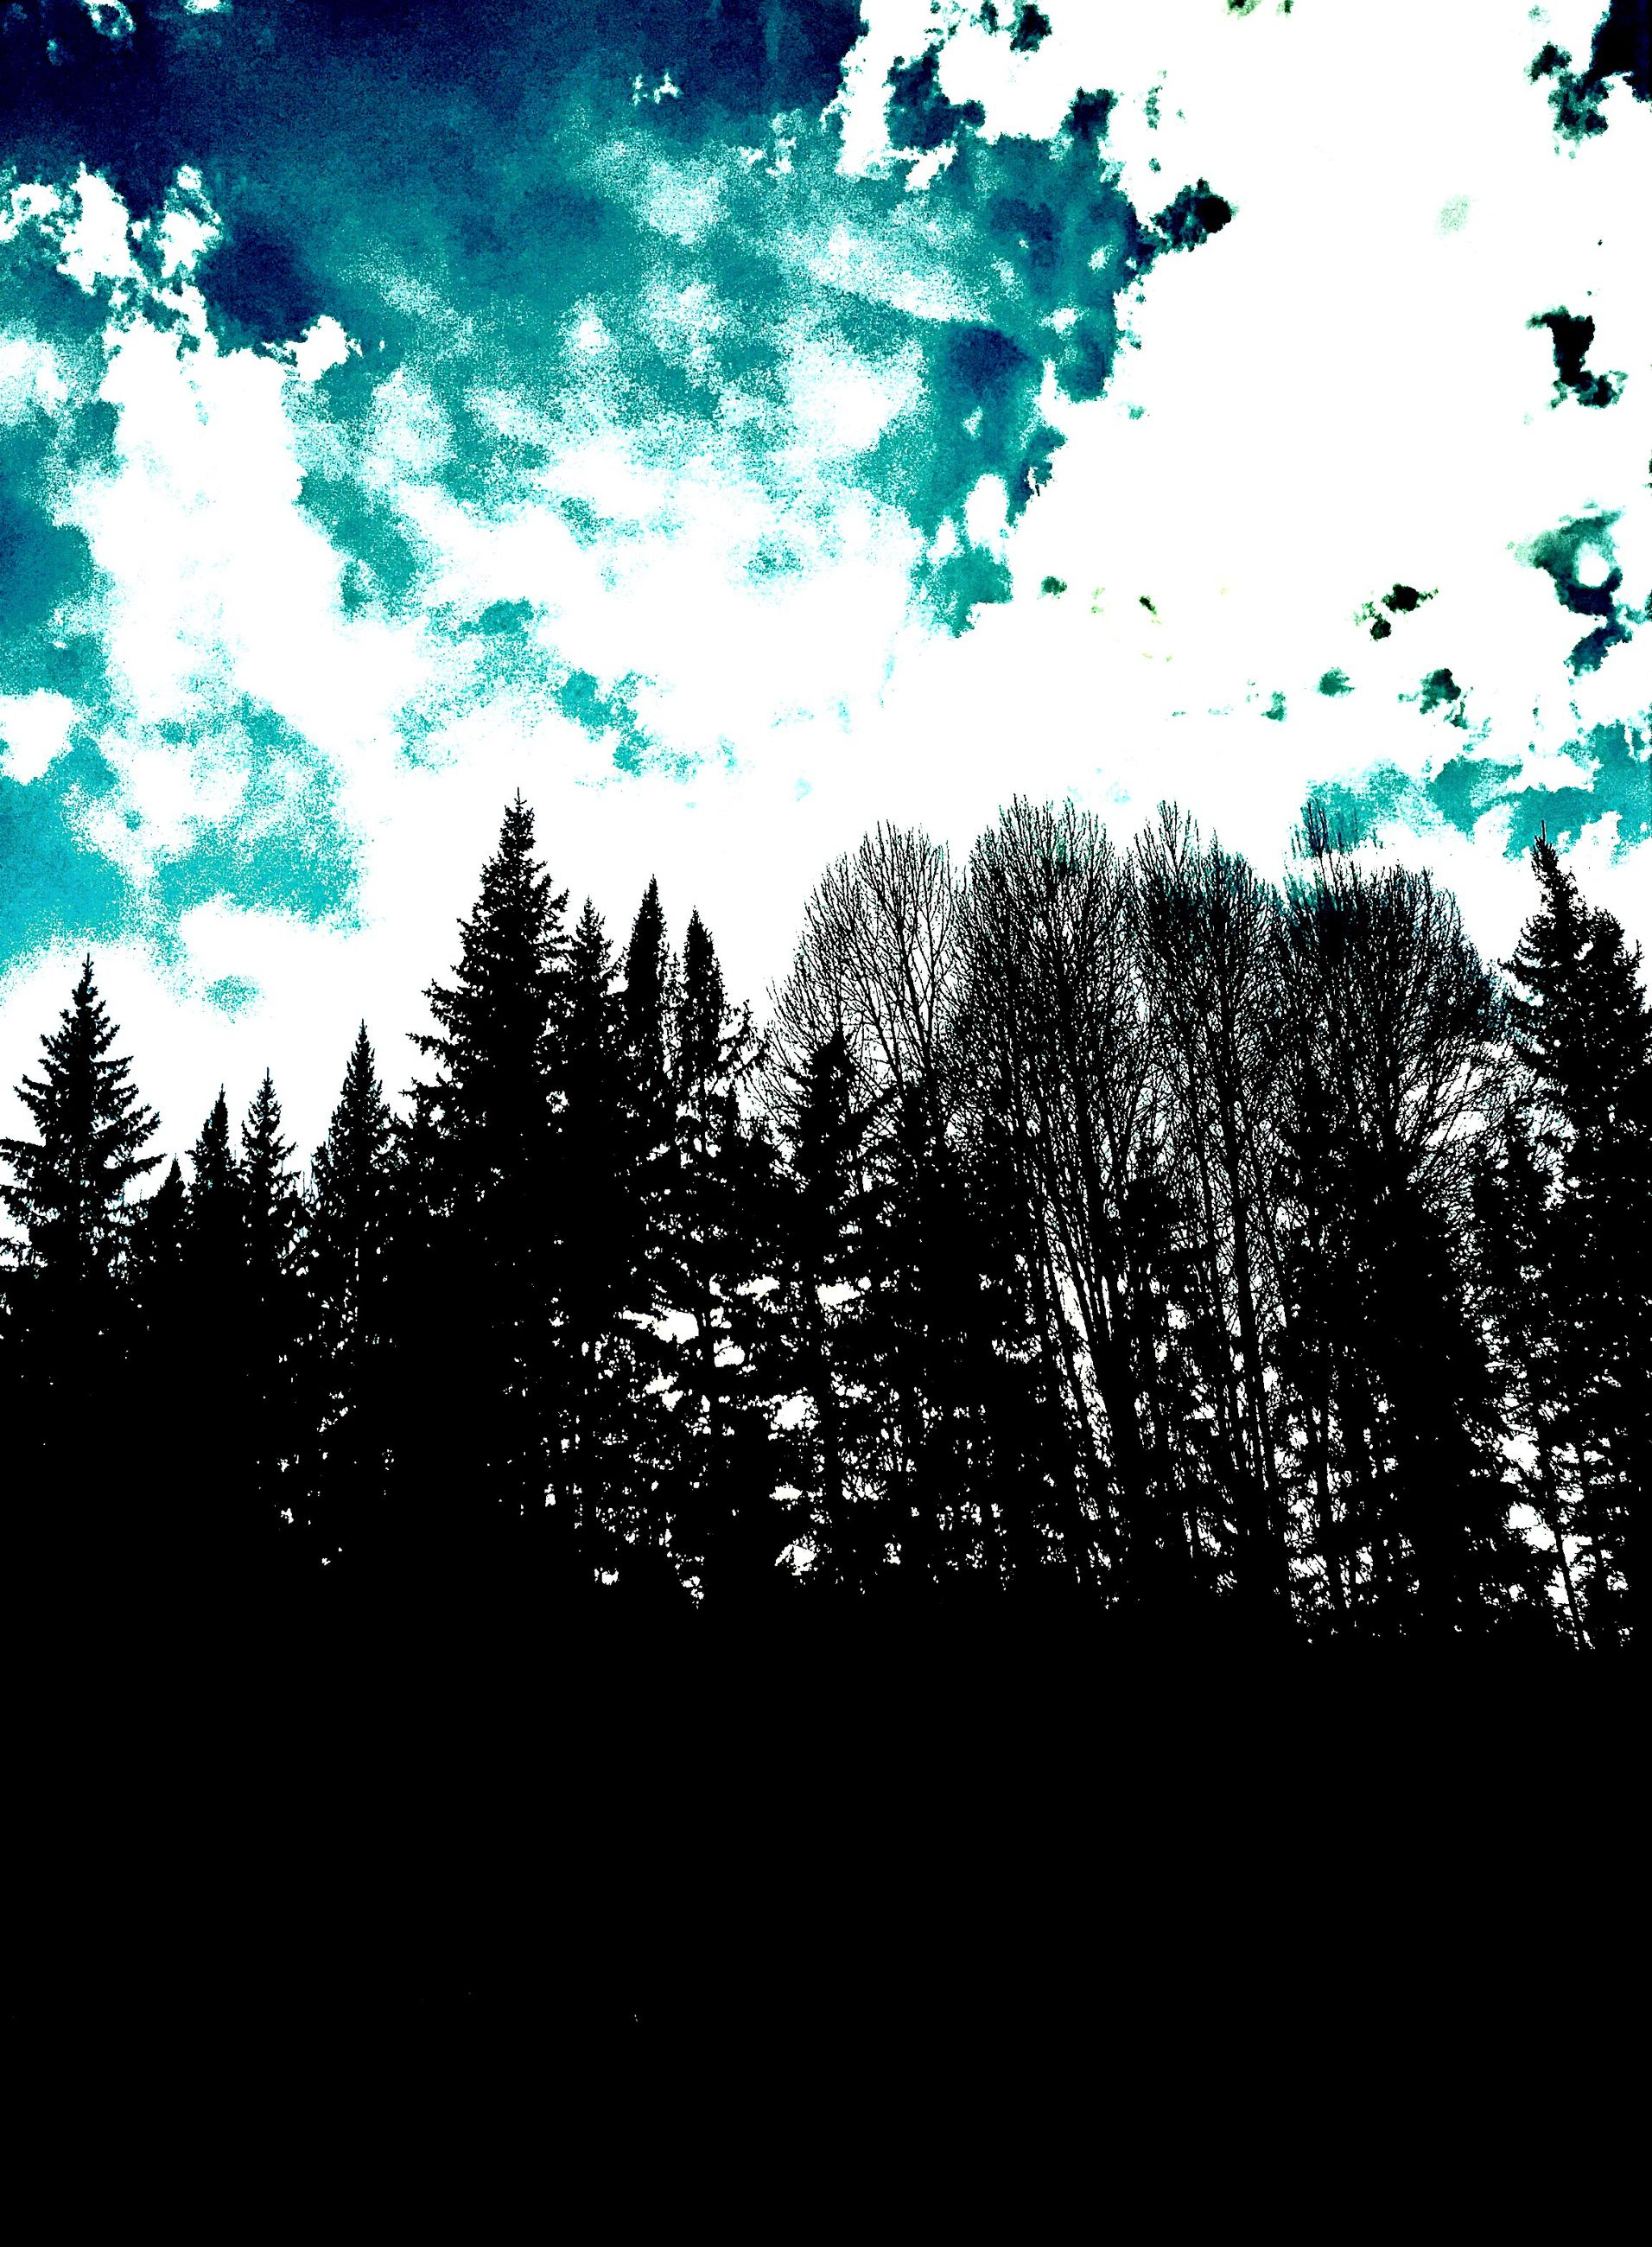 sky, nature, silhouette, no people, backgrounds, tree, growth, outdoors, beauty in nature, night, close-up